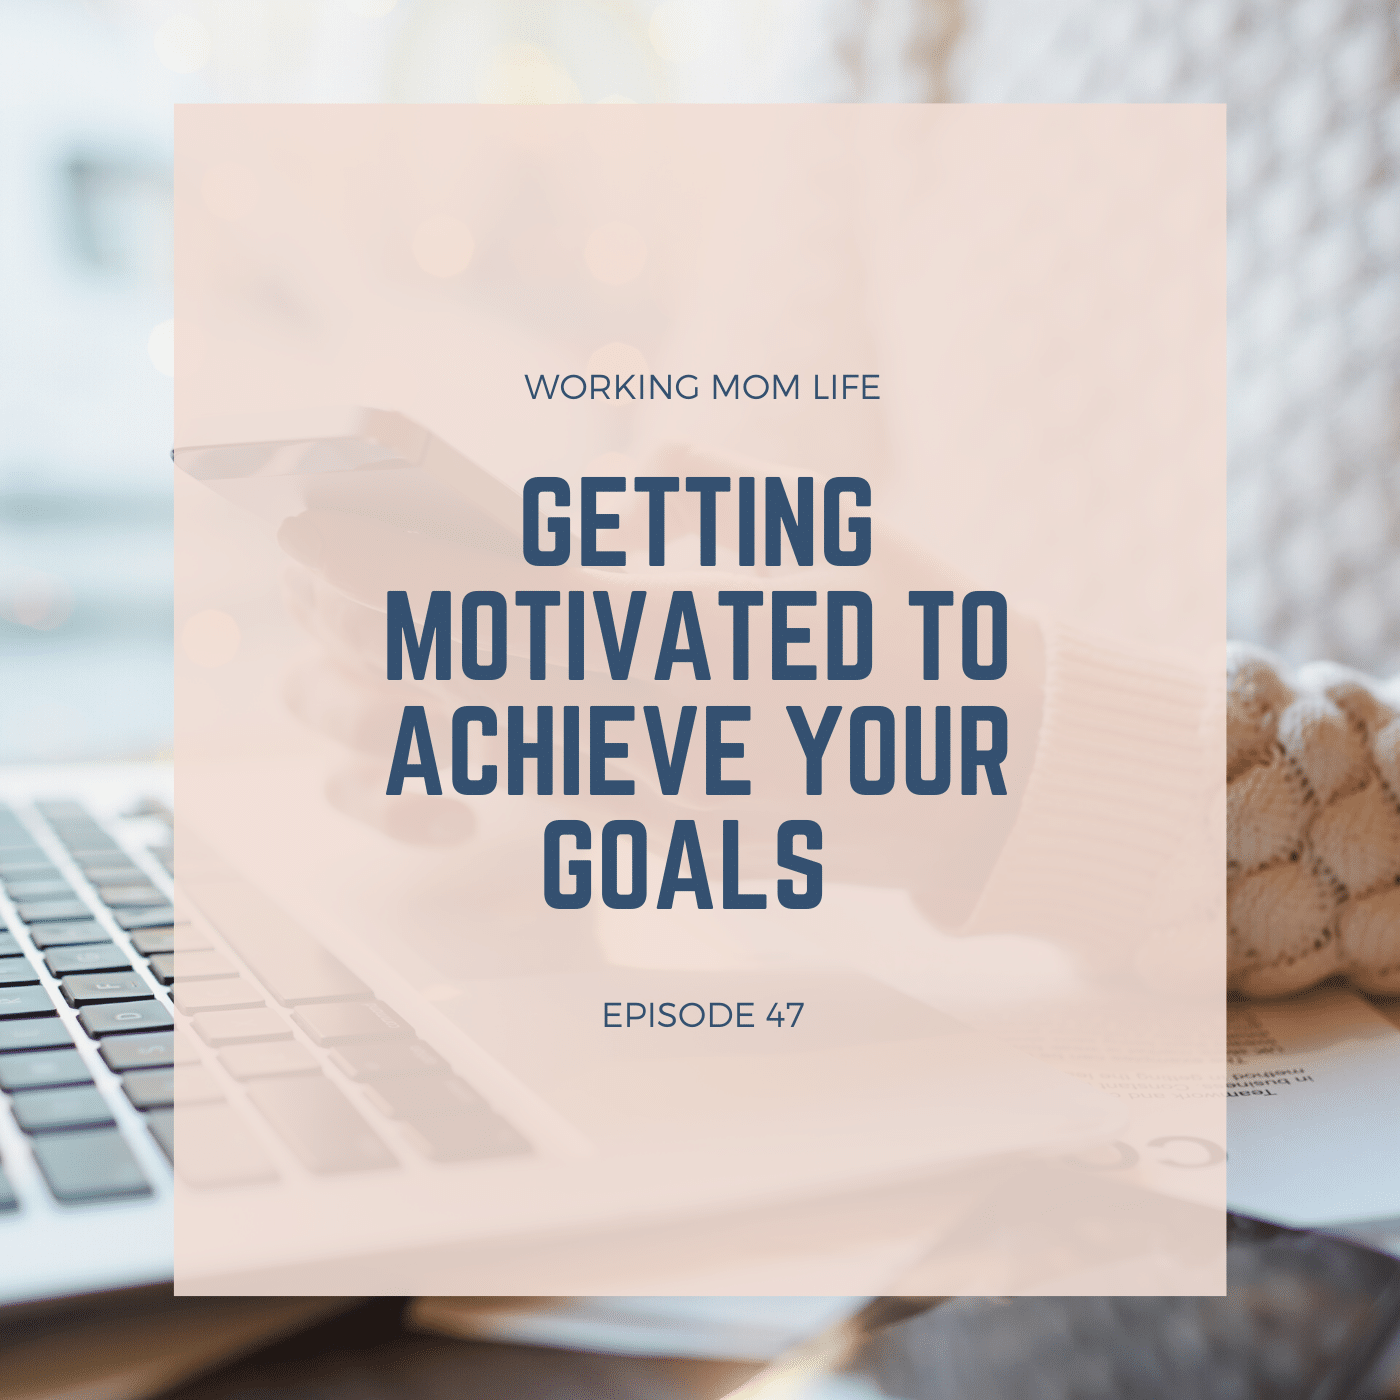 Episode 47 – Getting Motivated to Achieve Your Goals